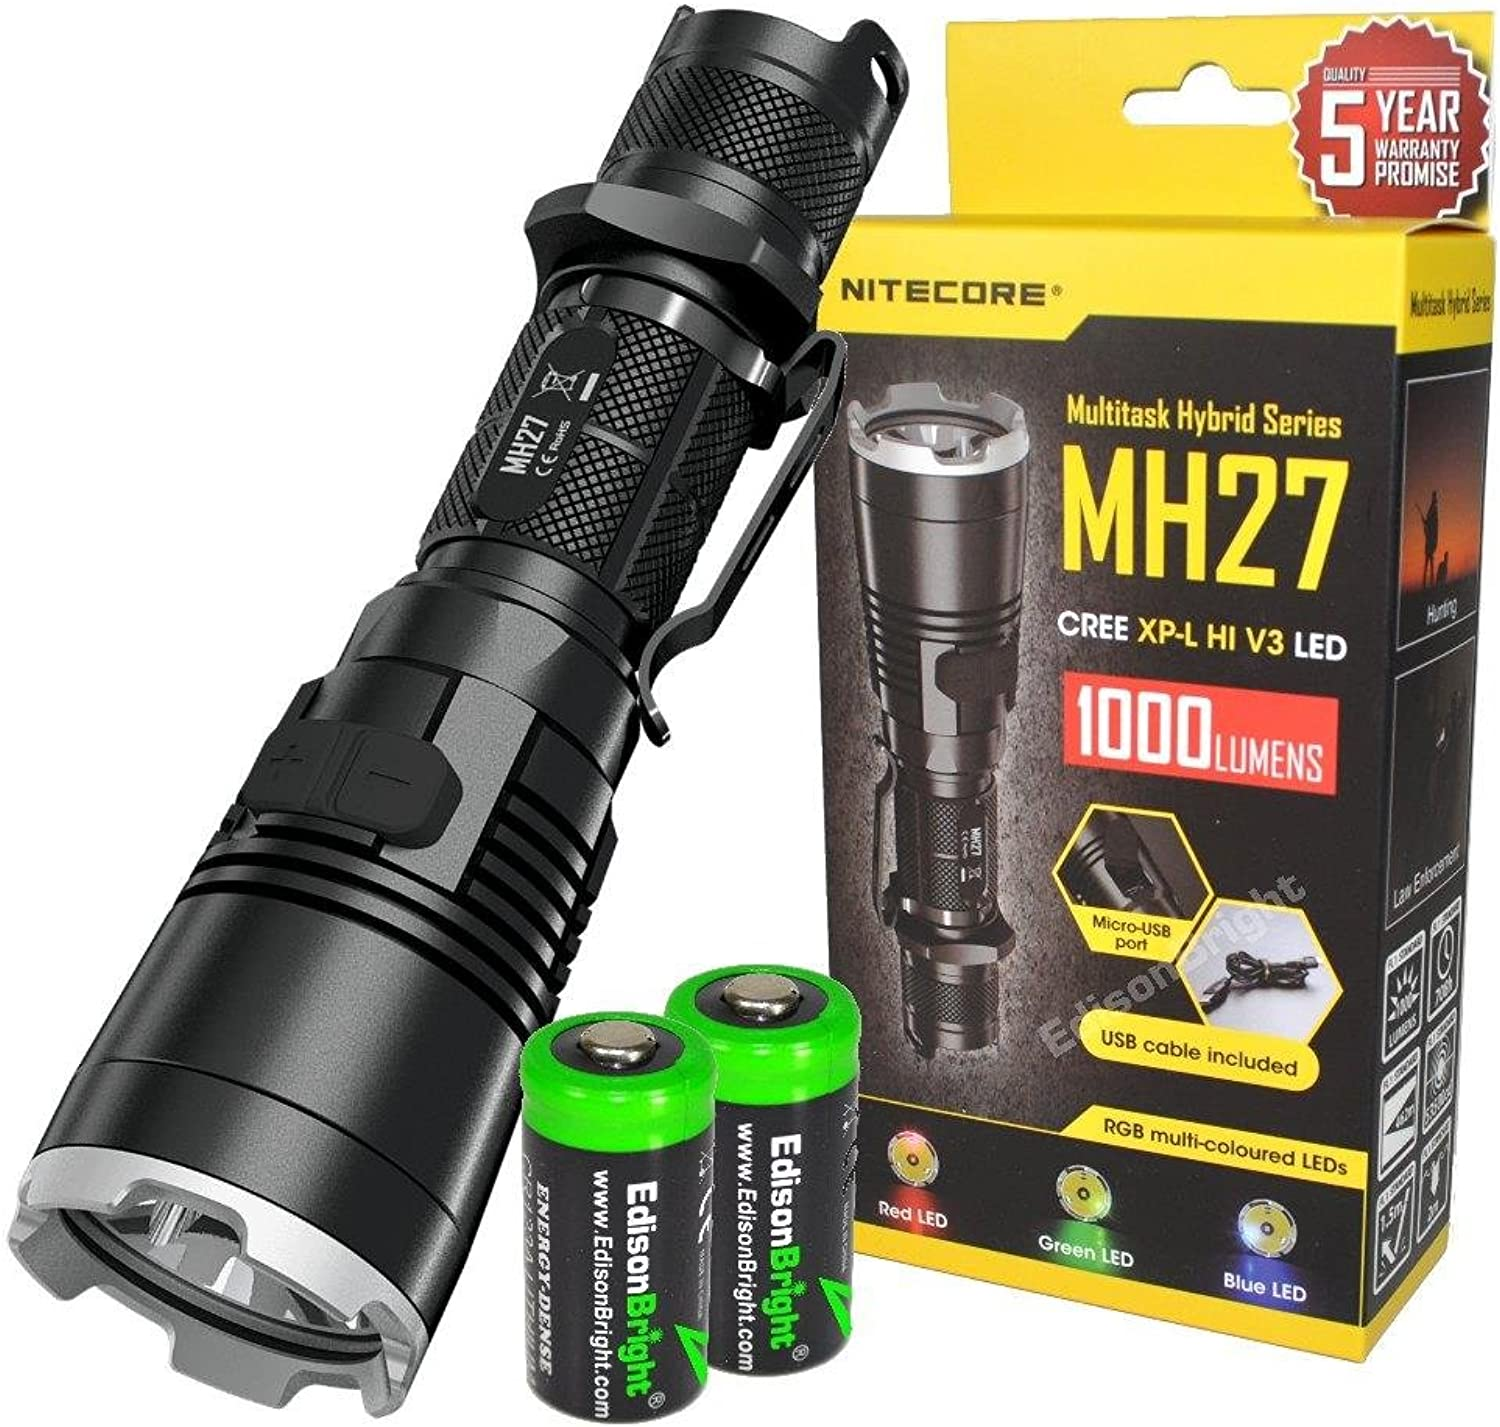 Nitecore MH27 1000 Lumens CREE LED Built in Red, Green, bluee Lights, Strobe, Police Warning Strobe, Rechargeable Flashlight searchlight with 2 X EdisonBright CR123A Batteries